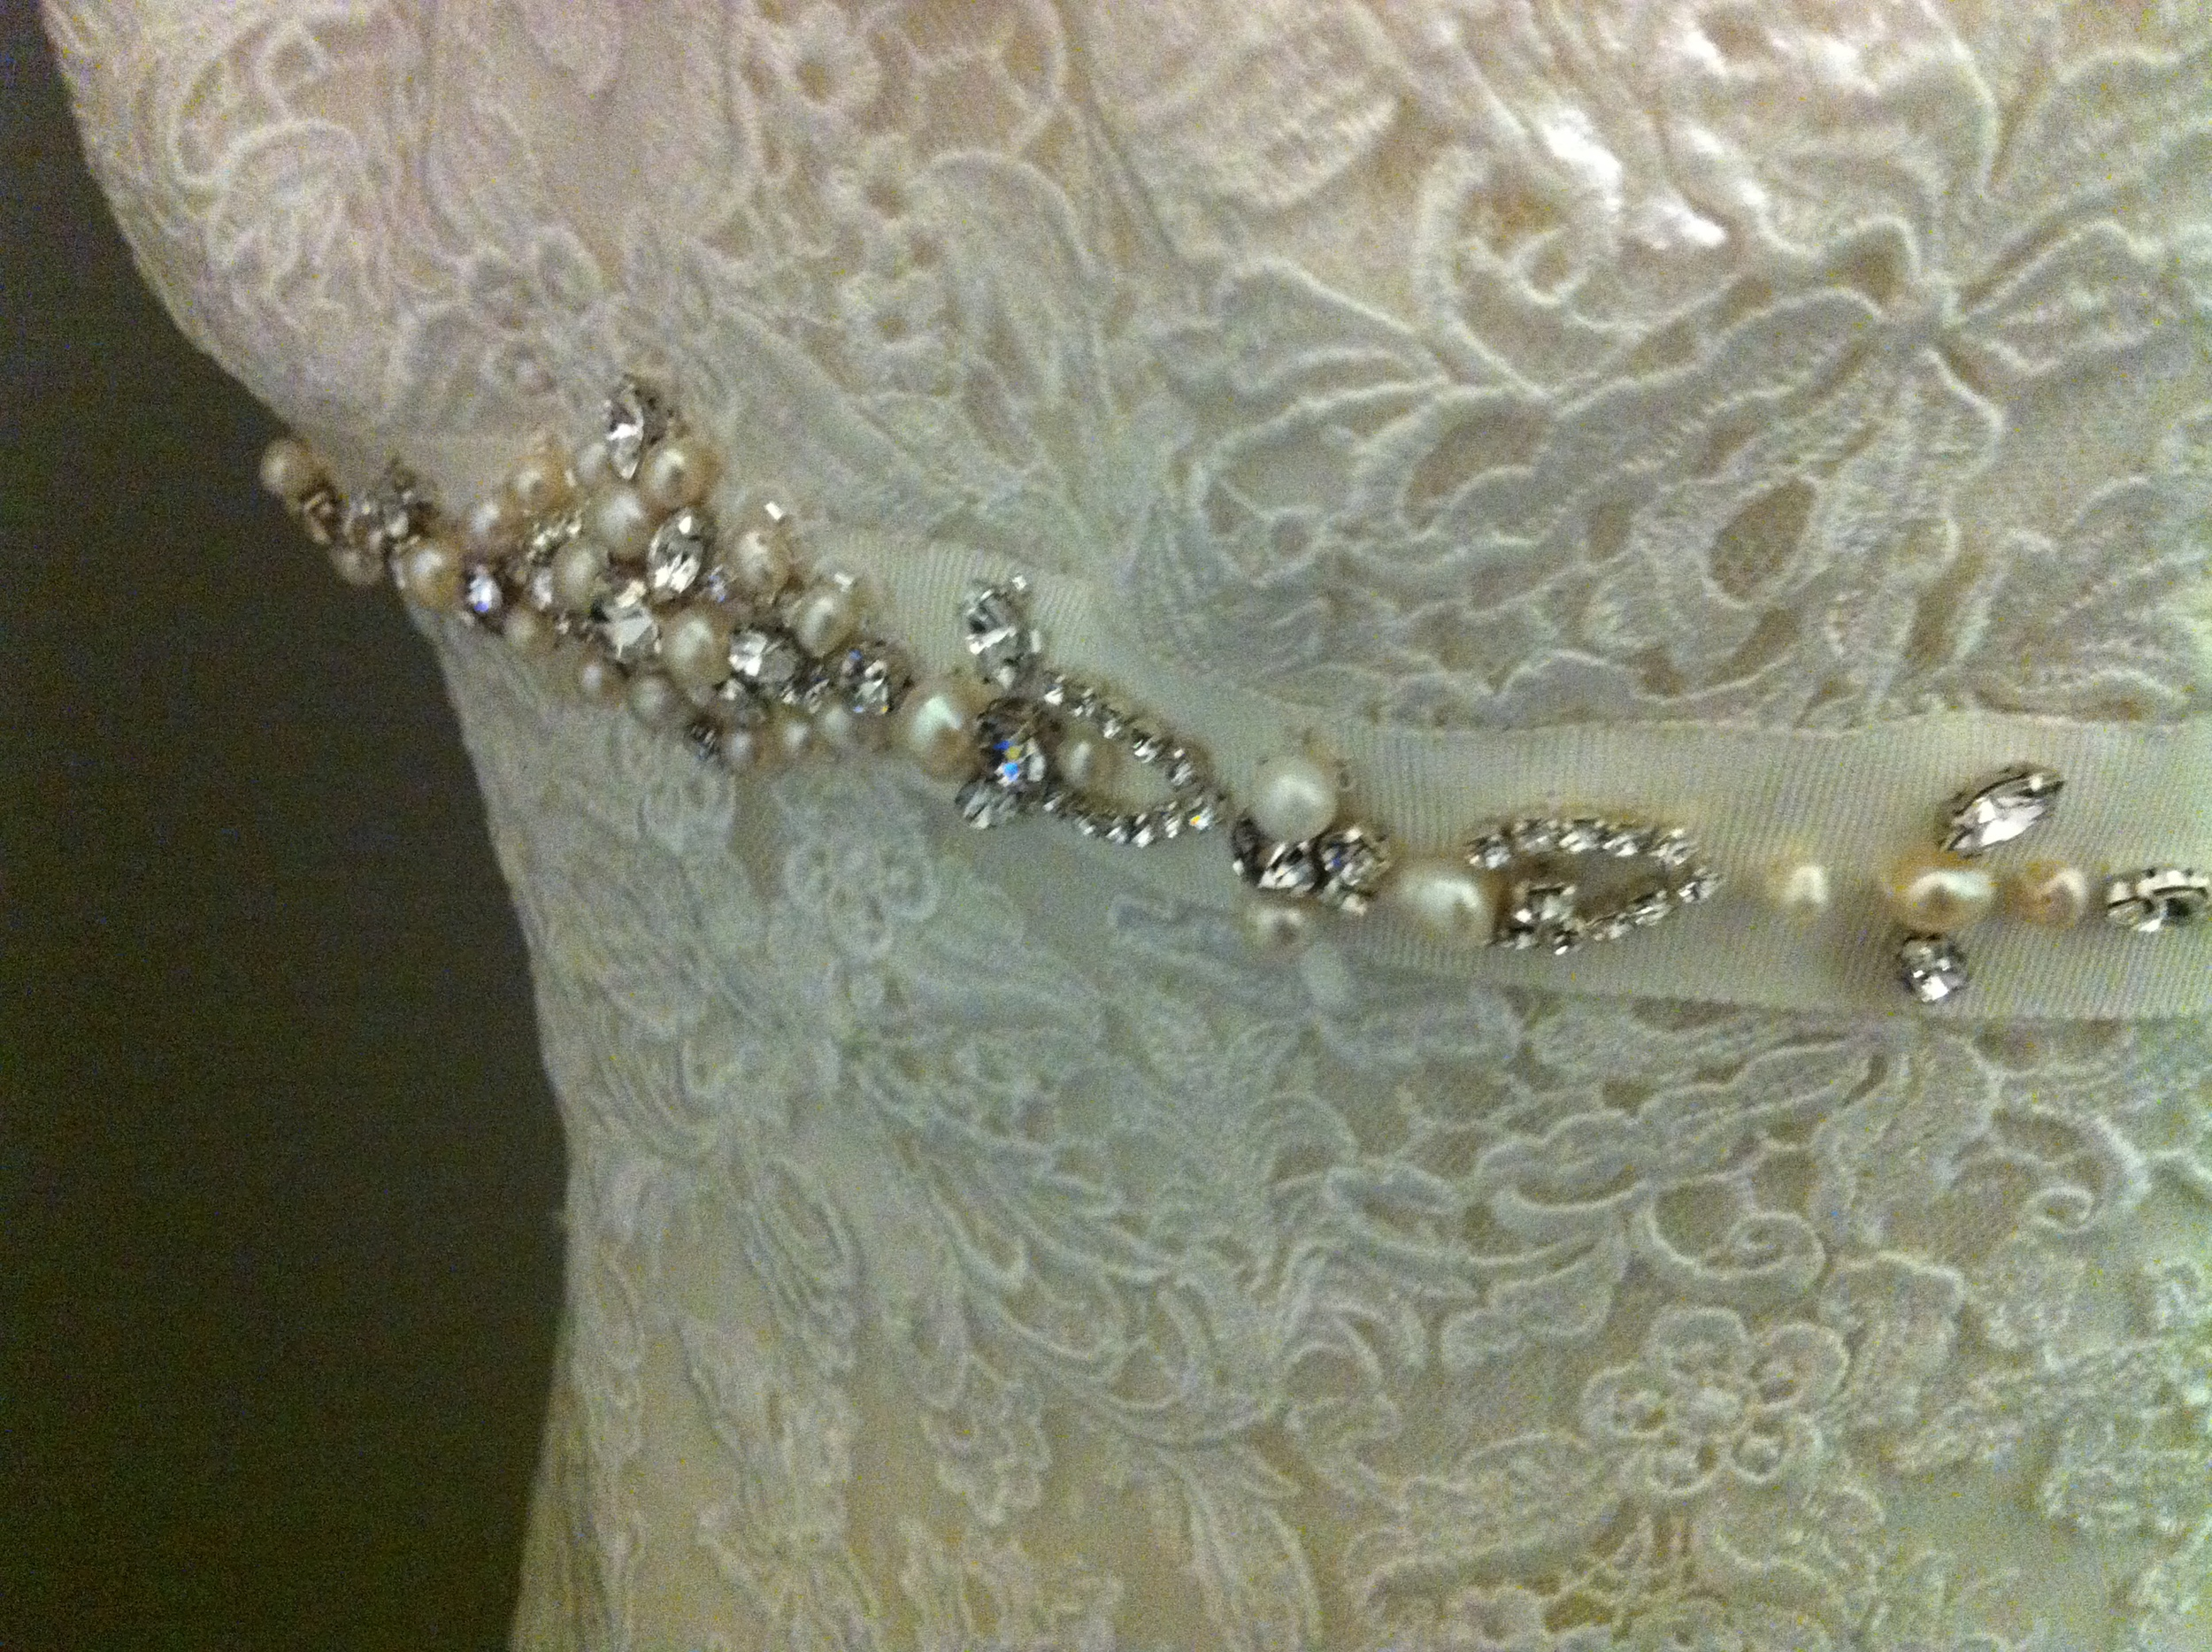 Celia's lace wedding dress was ivory and featured a jeweled accent belt at the bustline.